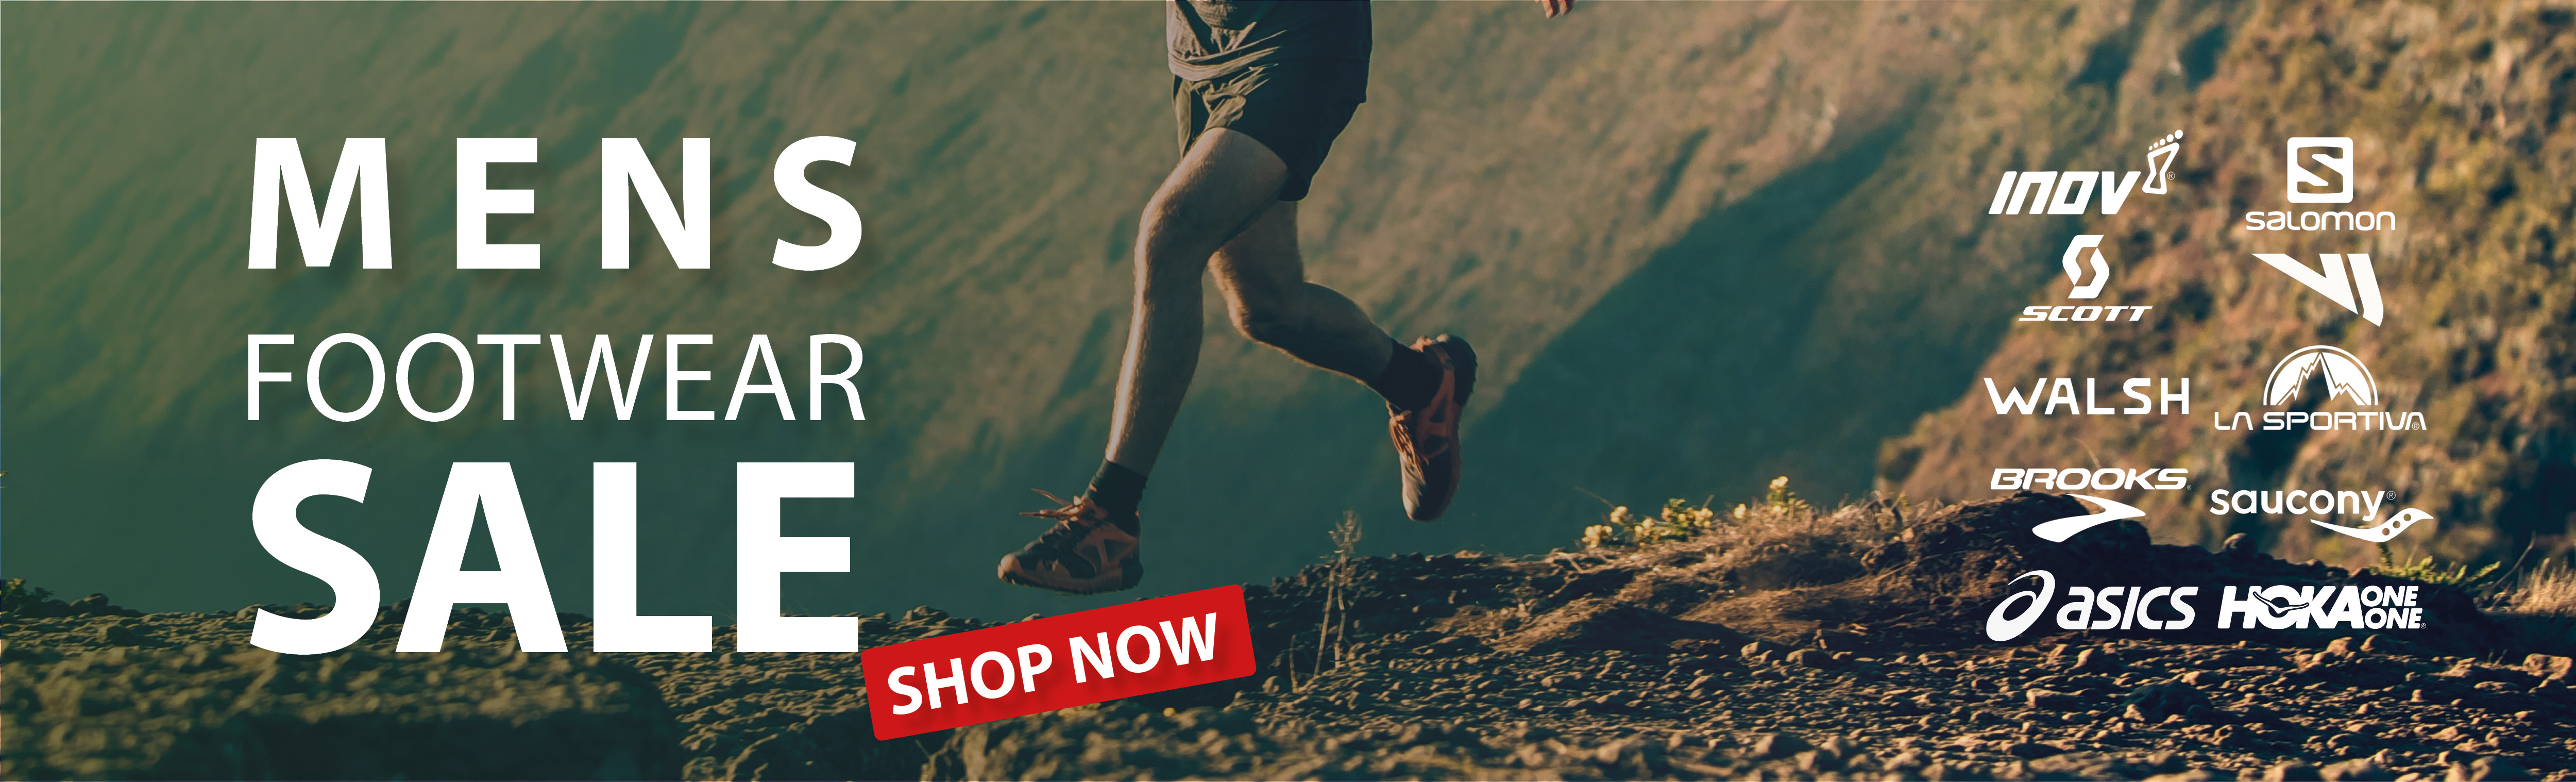 Men's running footwear up to 50% off most stock